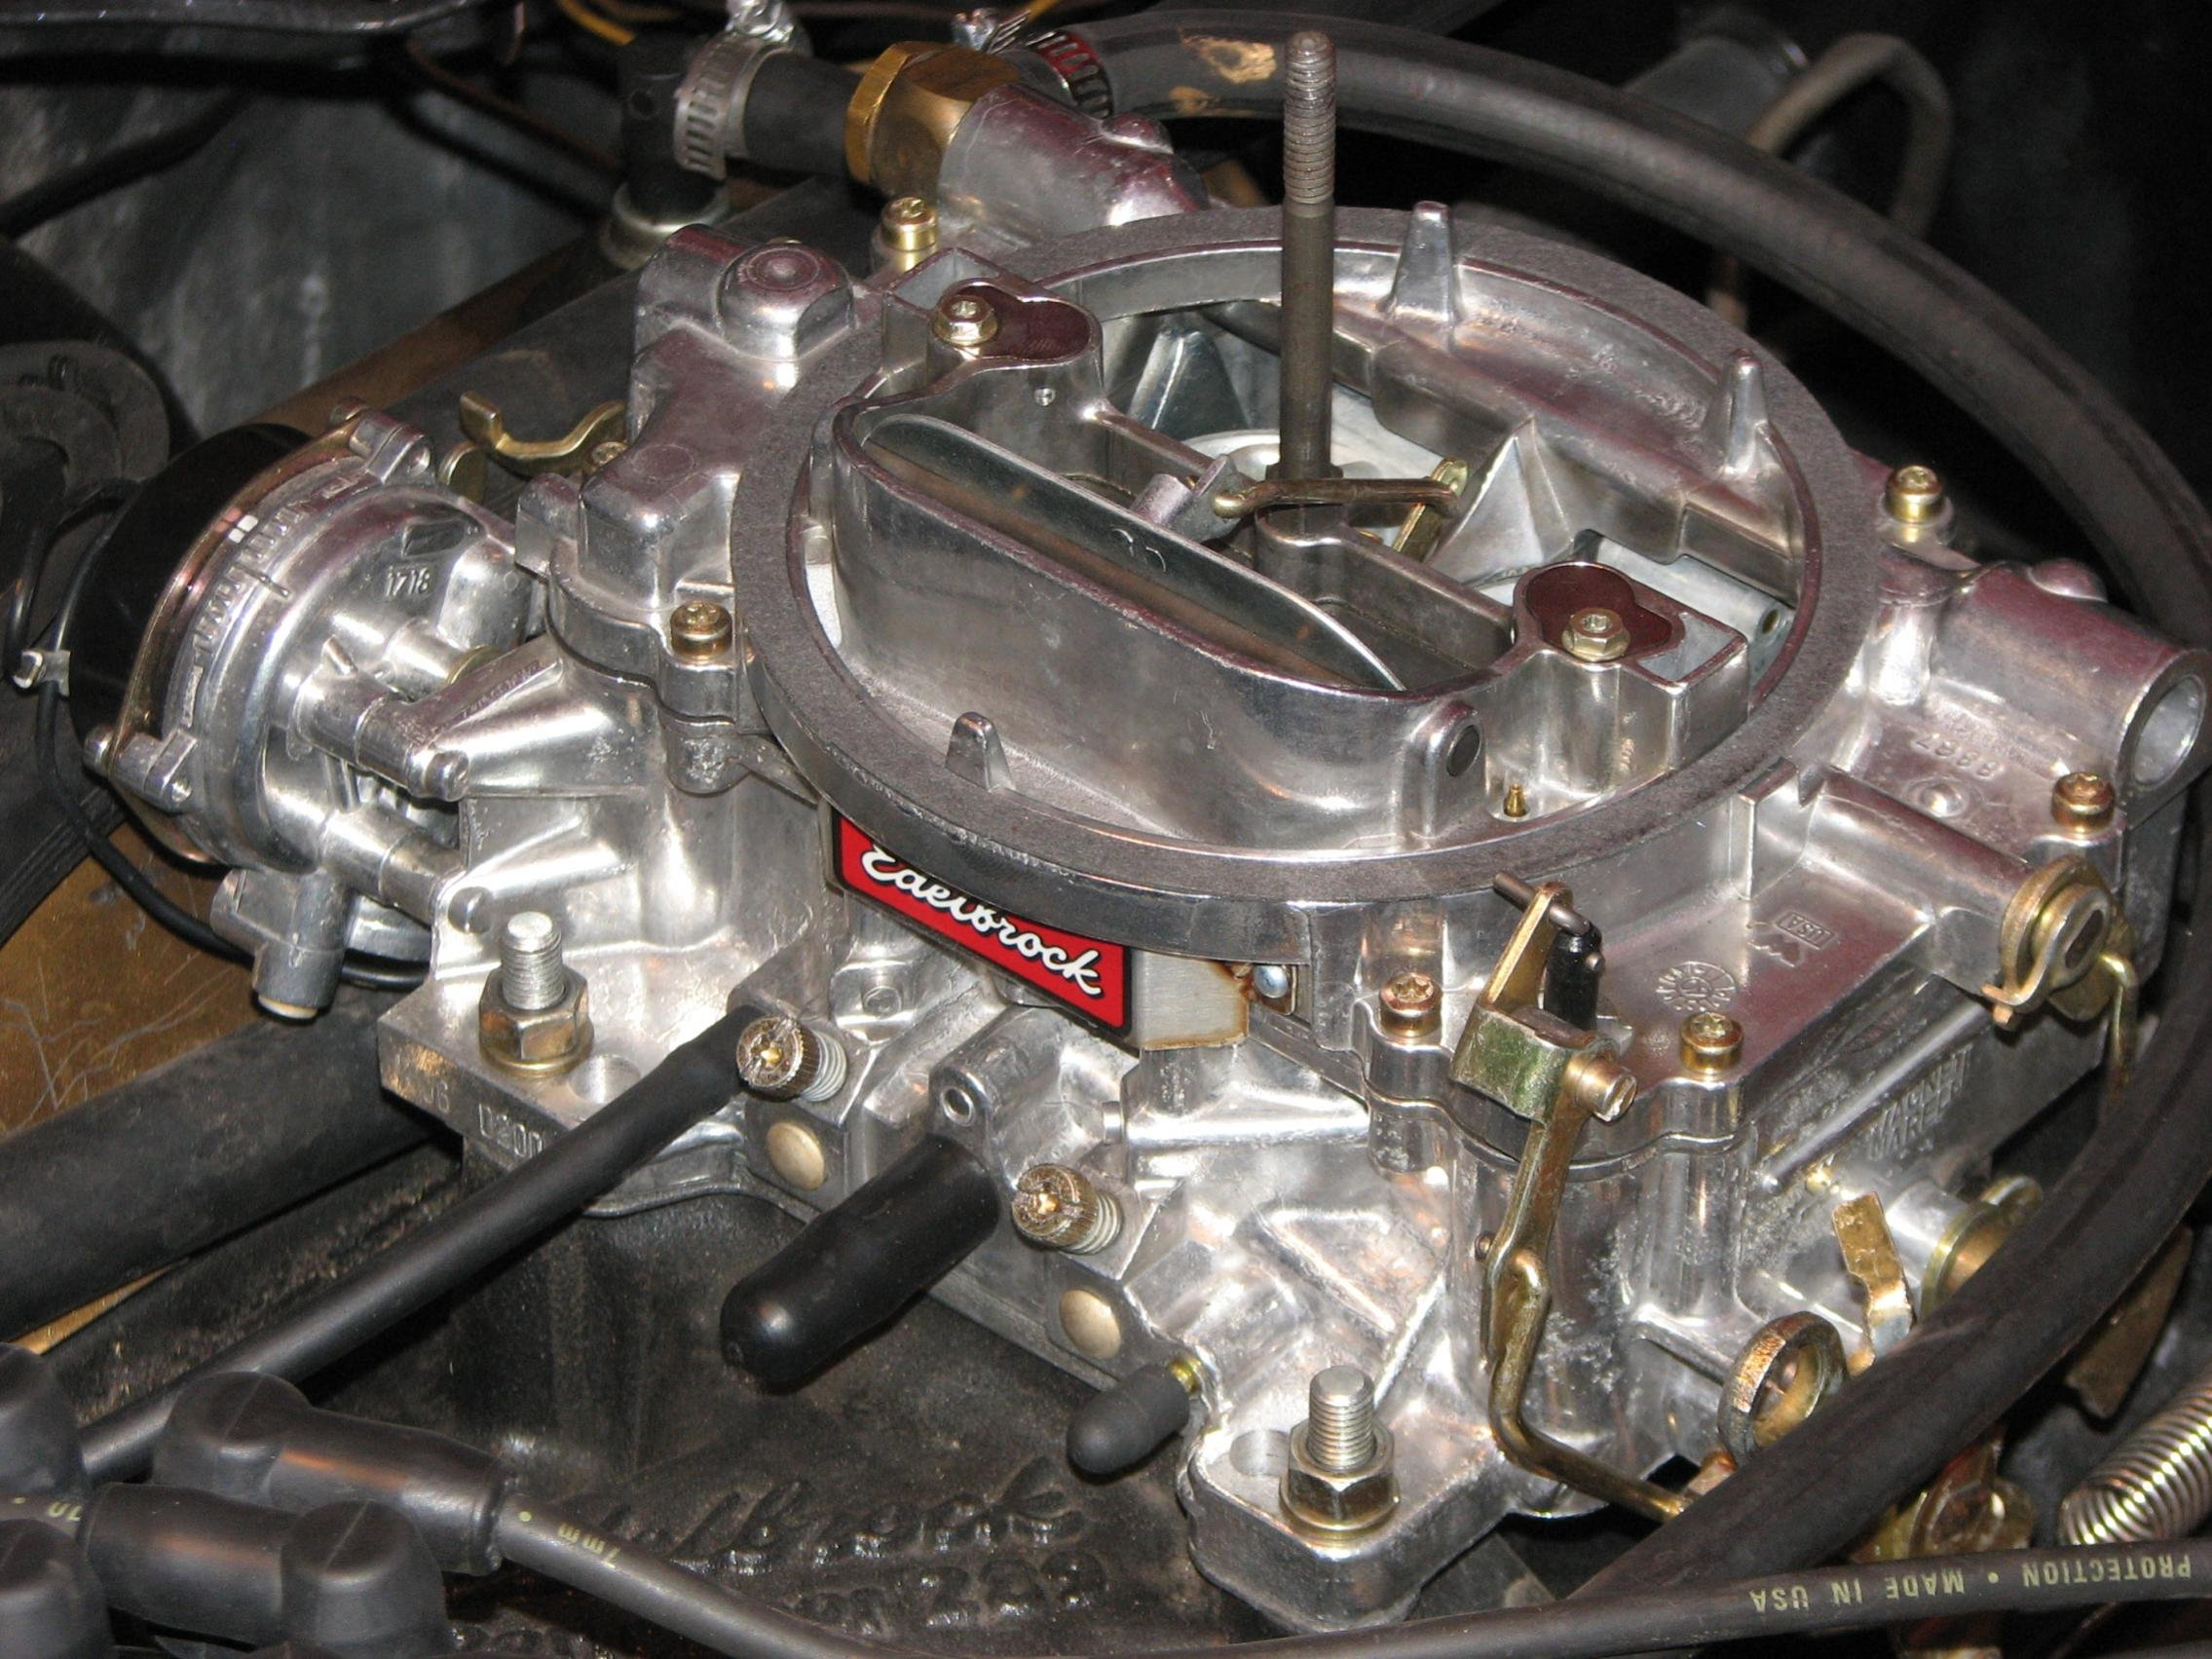 Need help with Edelbrock 1406 Carb - Ford Mustang Forum